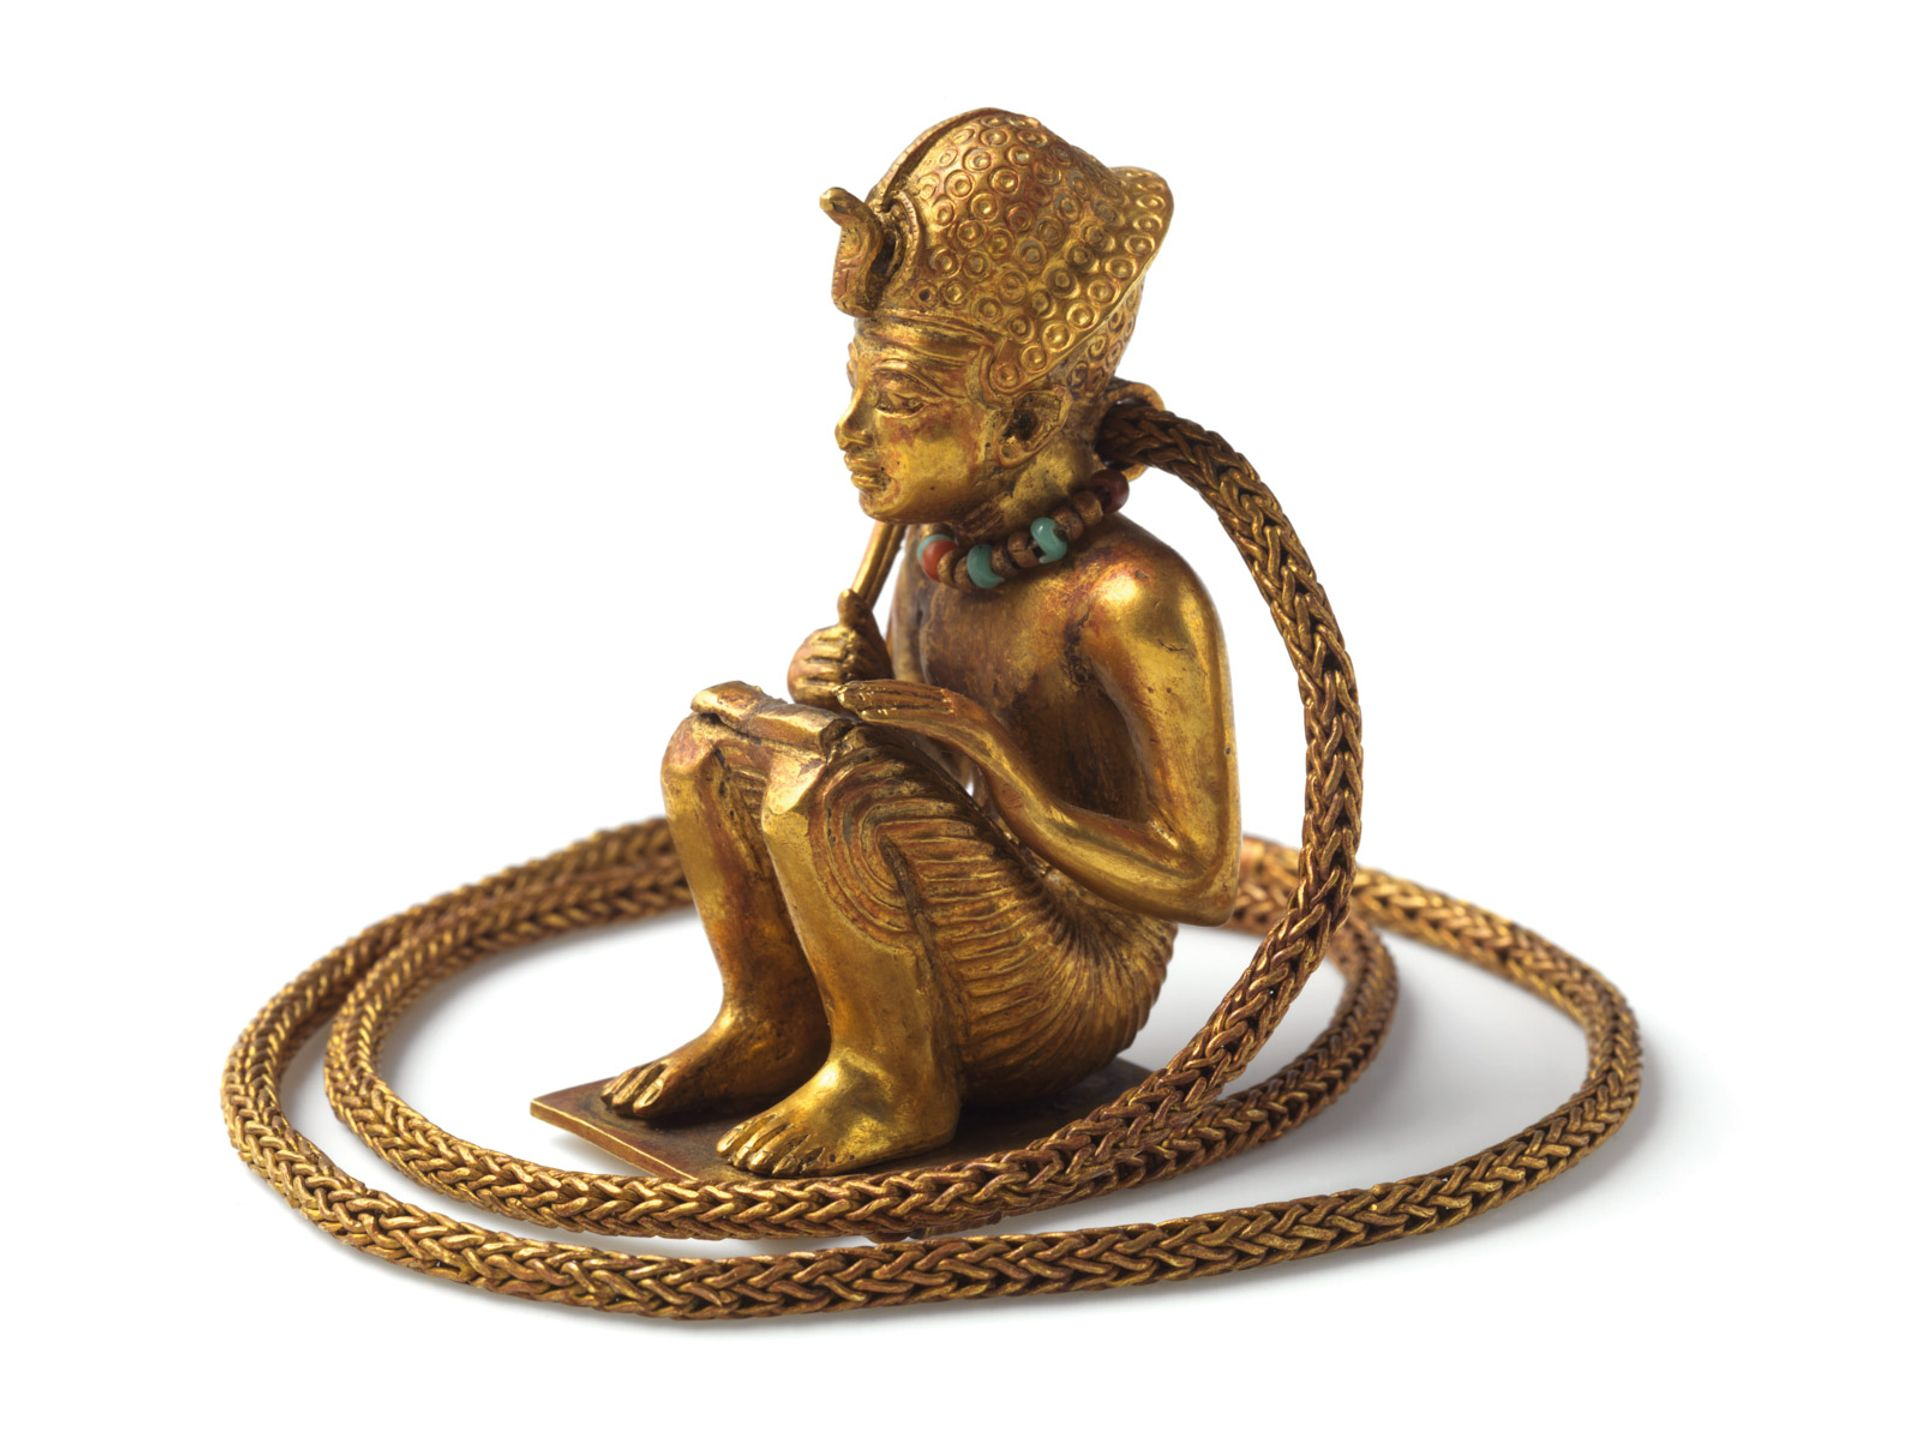 This gold squatting figure (1336-1326BC) with chain was previously thought to be a depiction of Amenhotep III © Brooklyn Museum